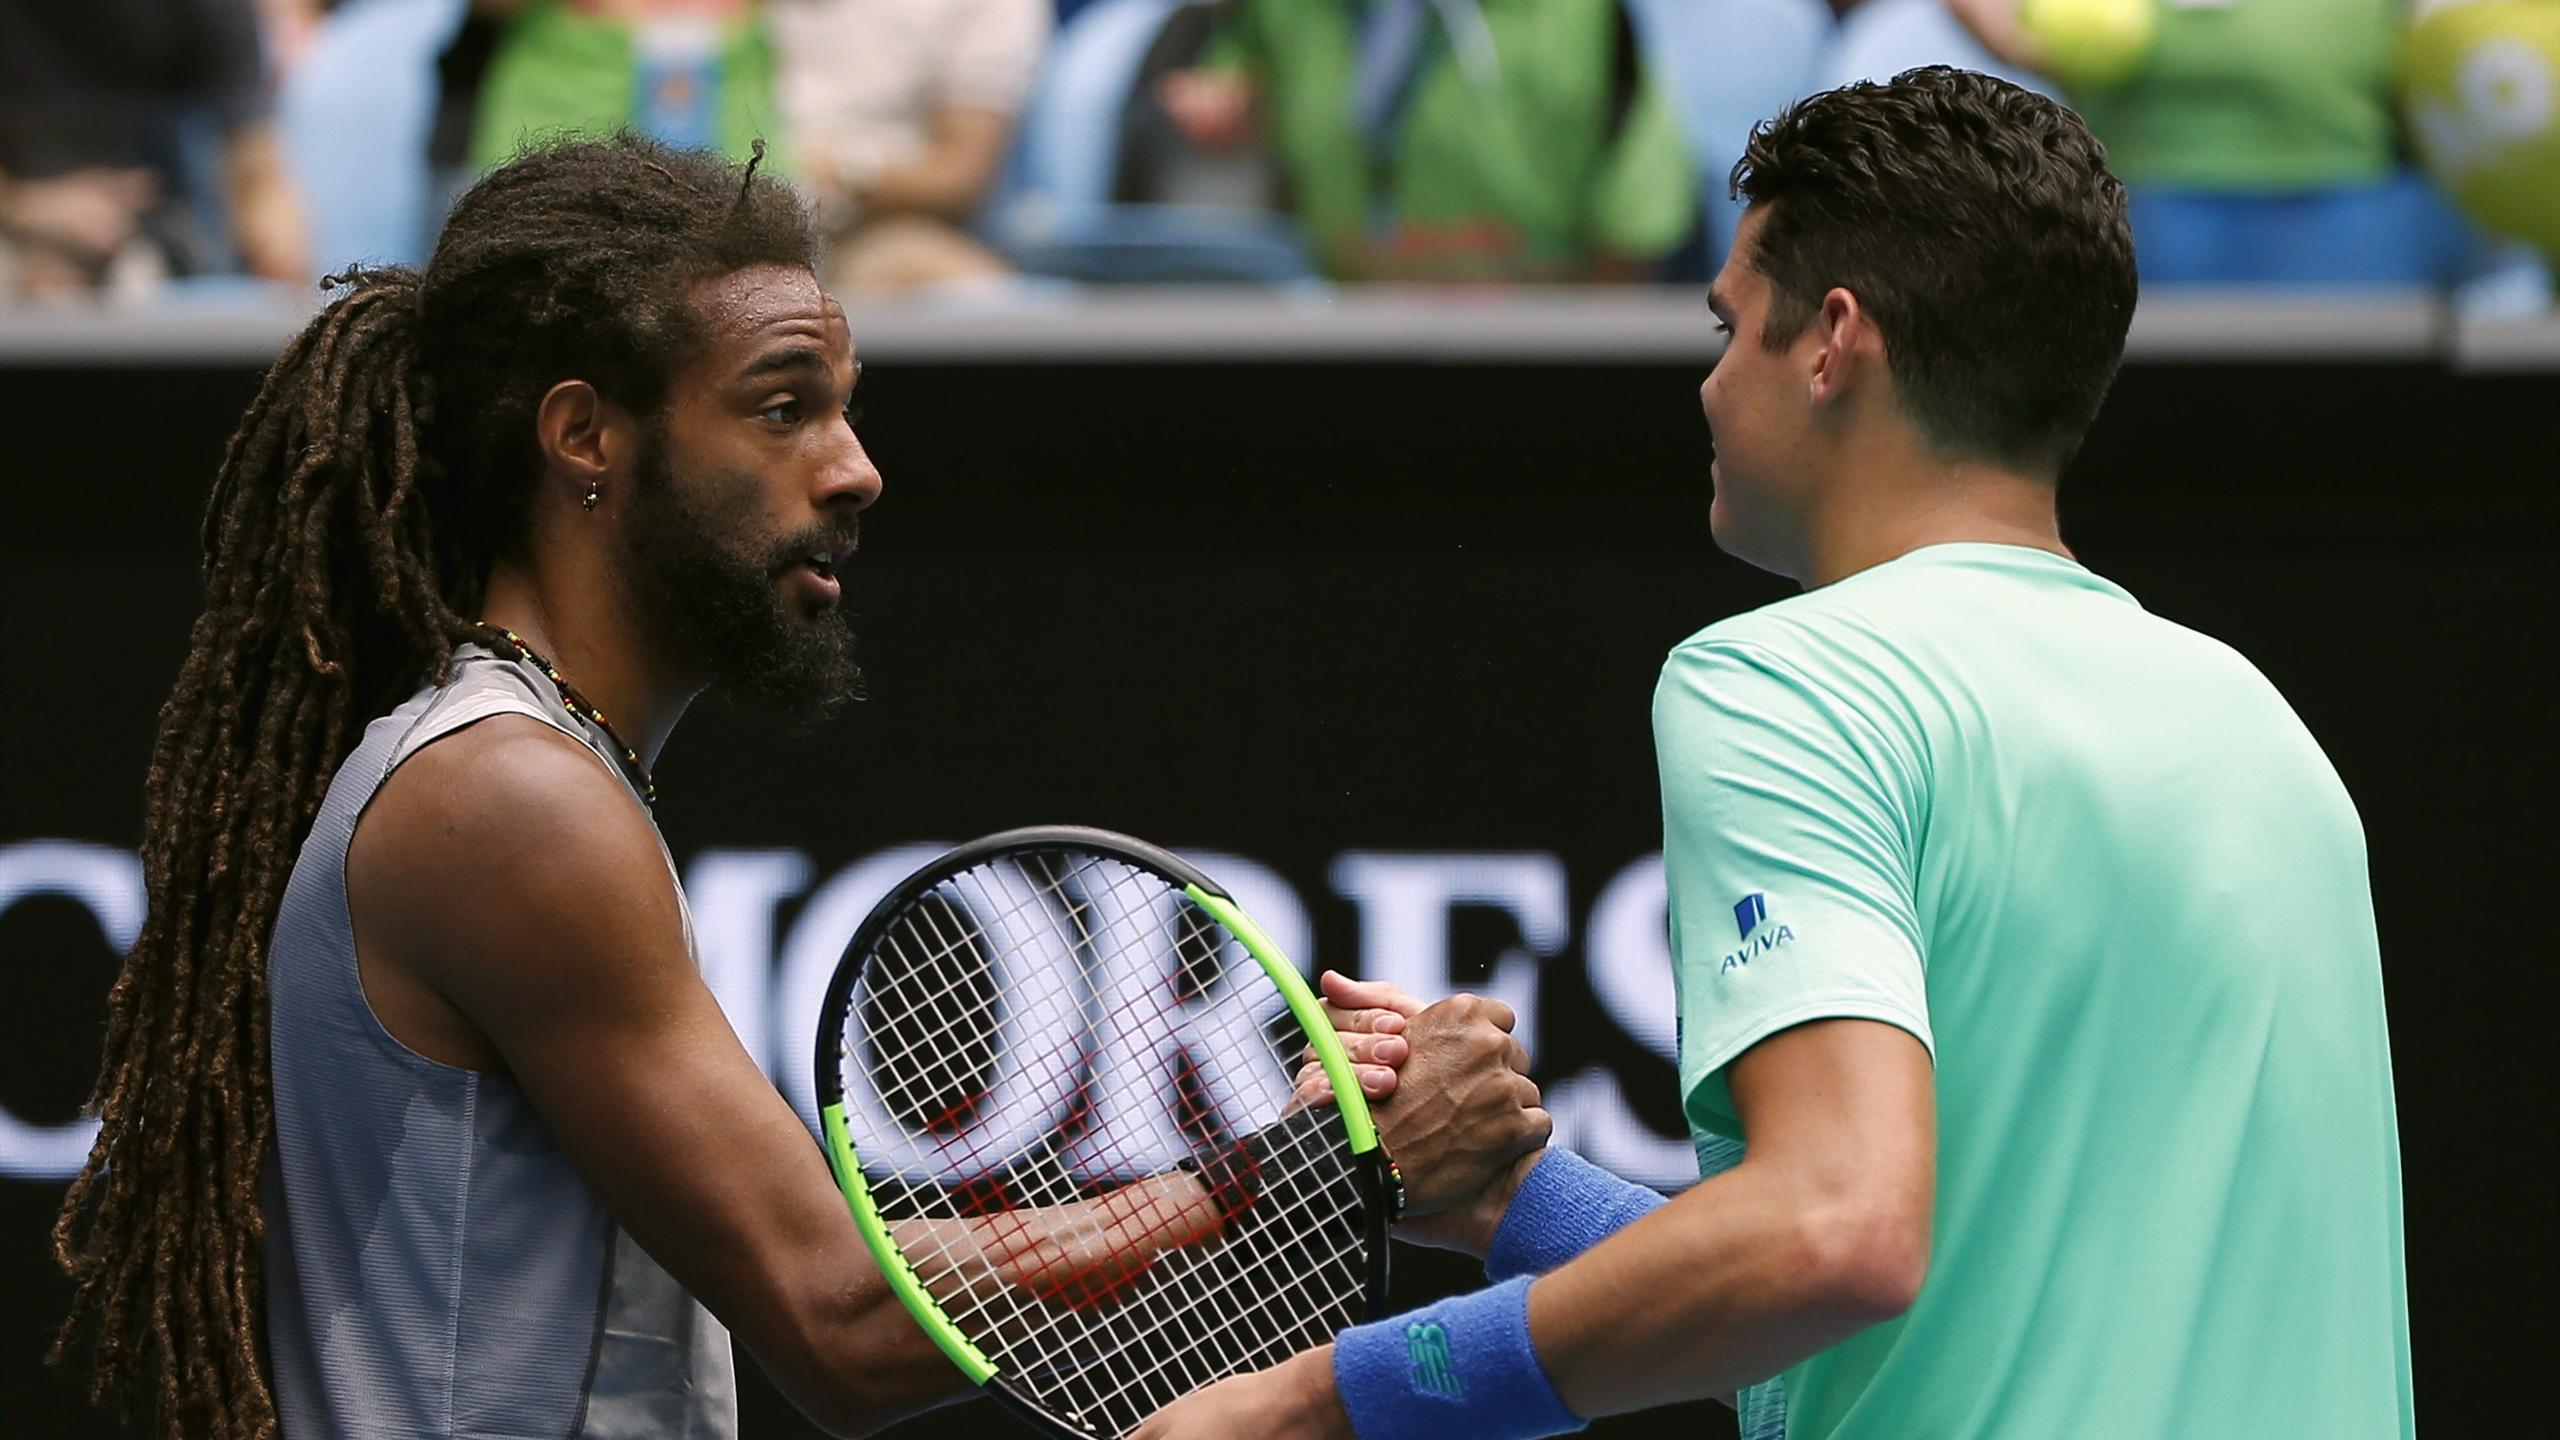 Canada's Milos Raonic shakes hands after winning his first round match against Germany's Dustin Brown